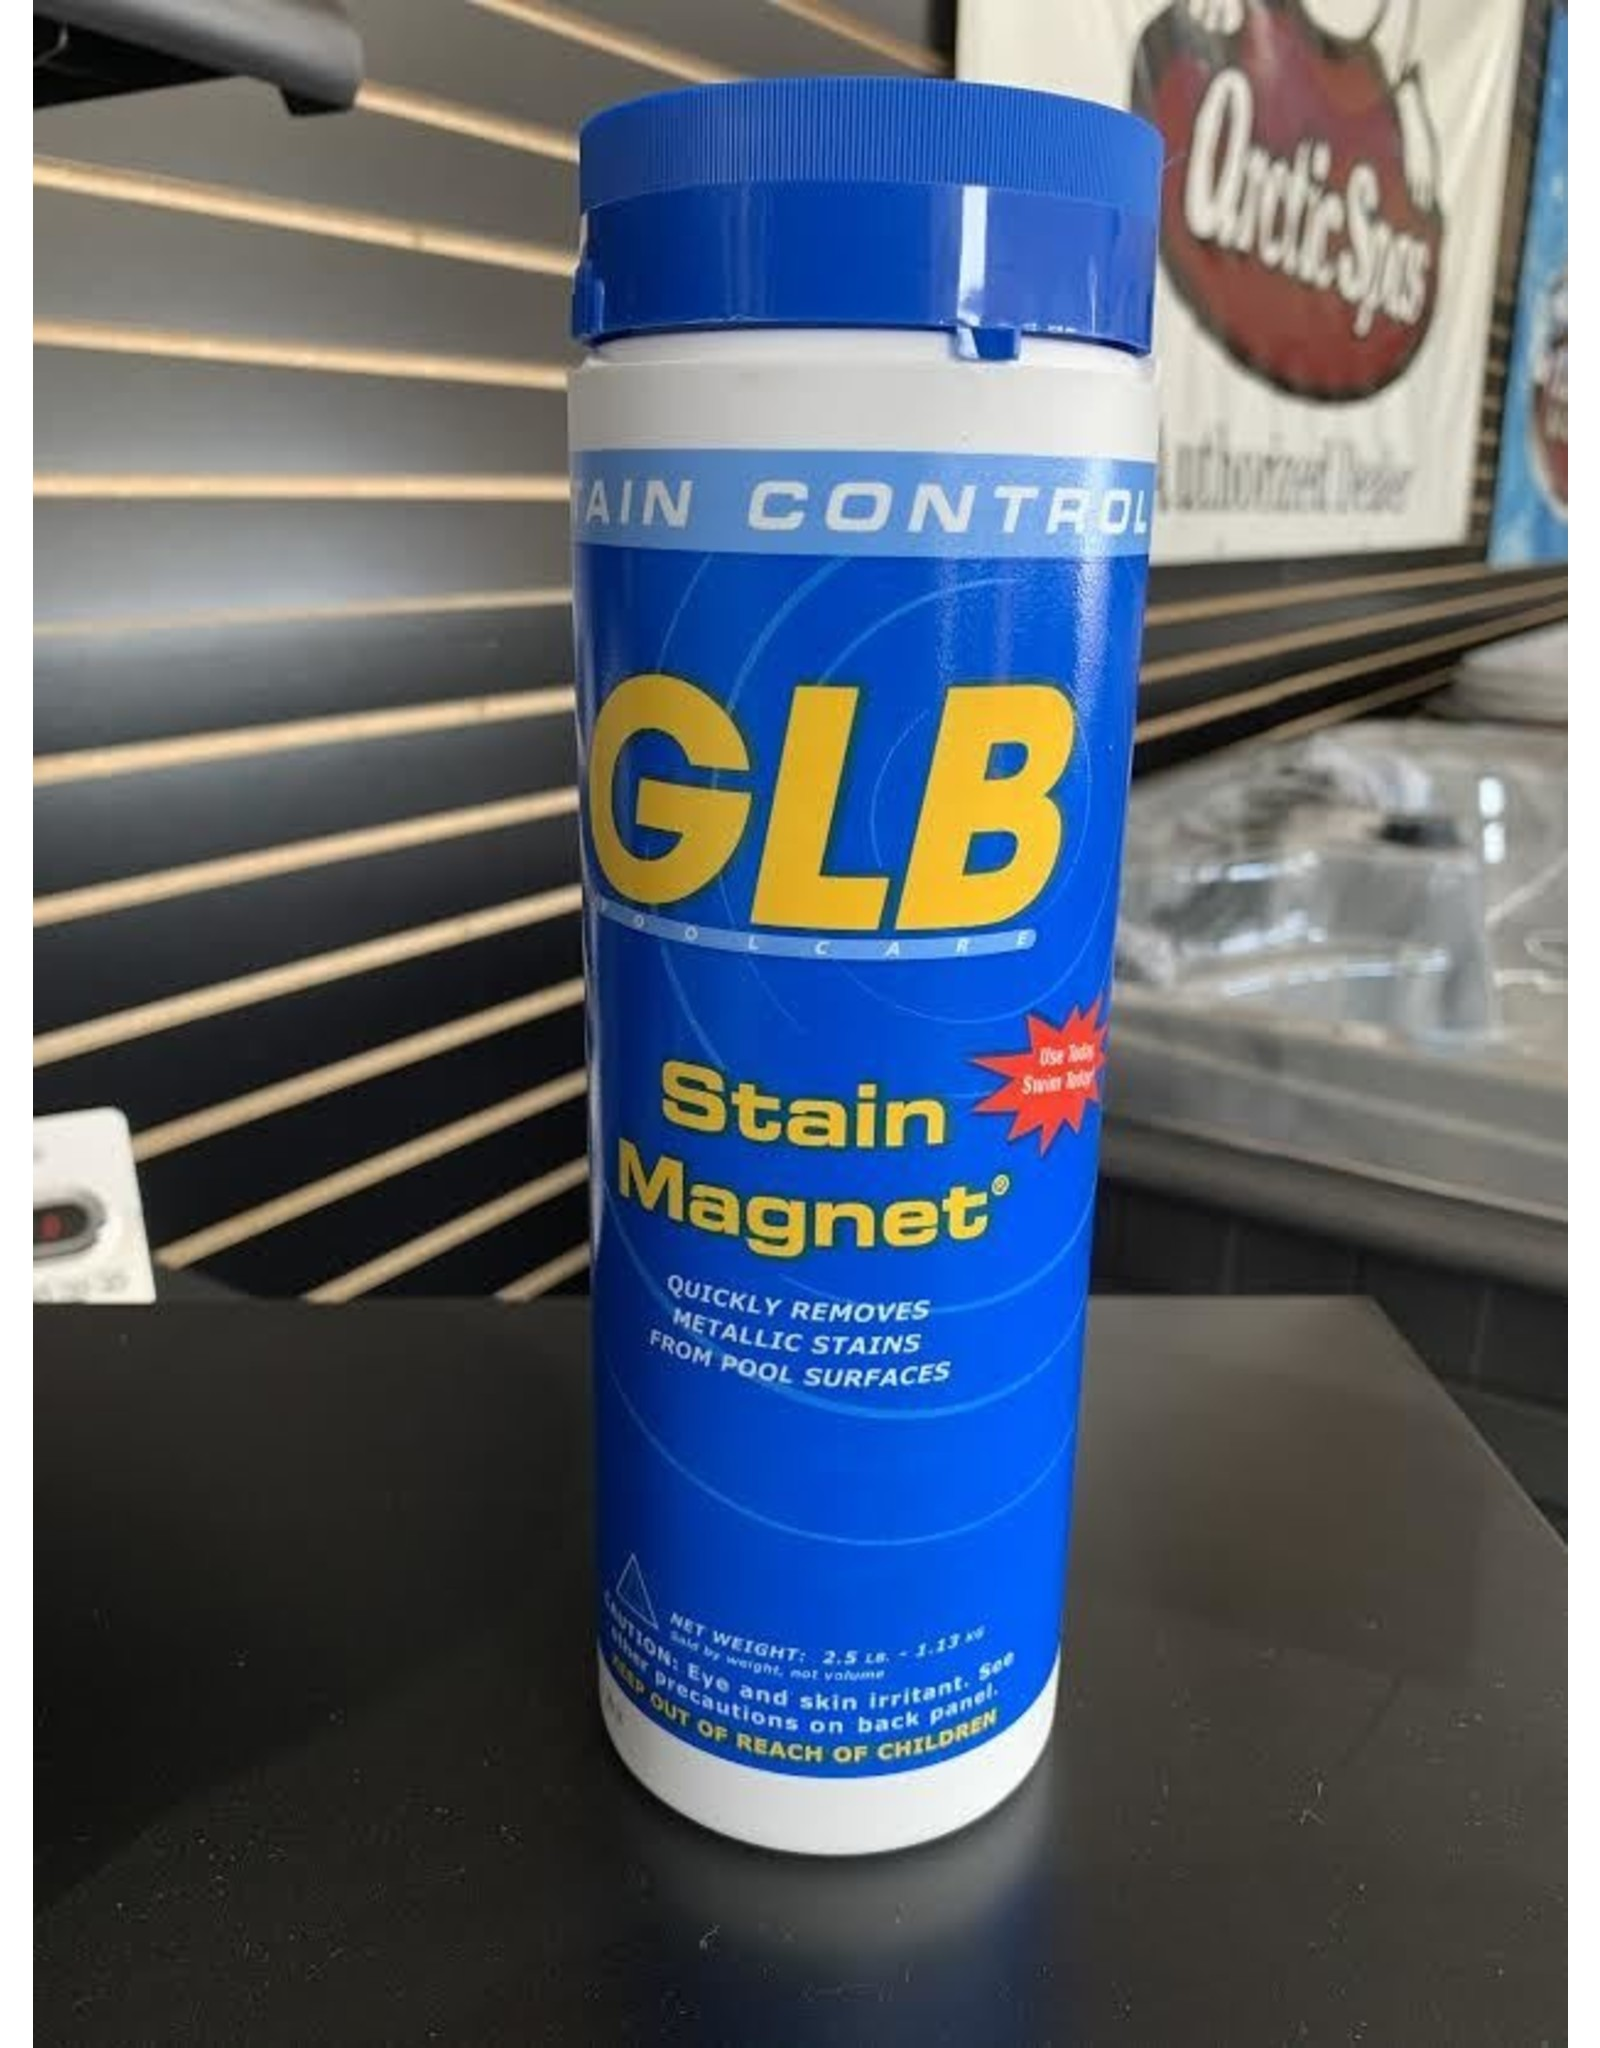 GLB Stain Magnet, 2.5 lbs